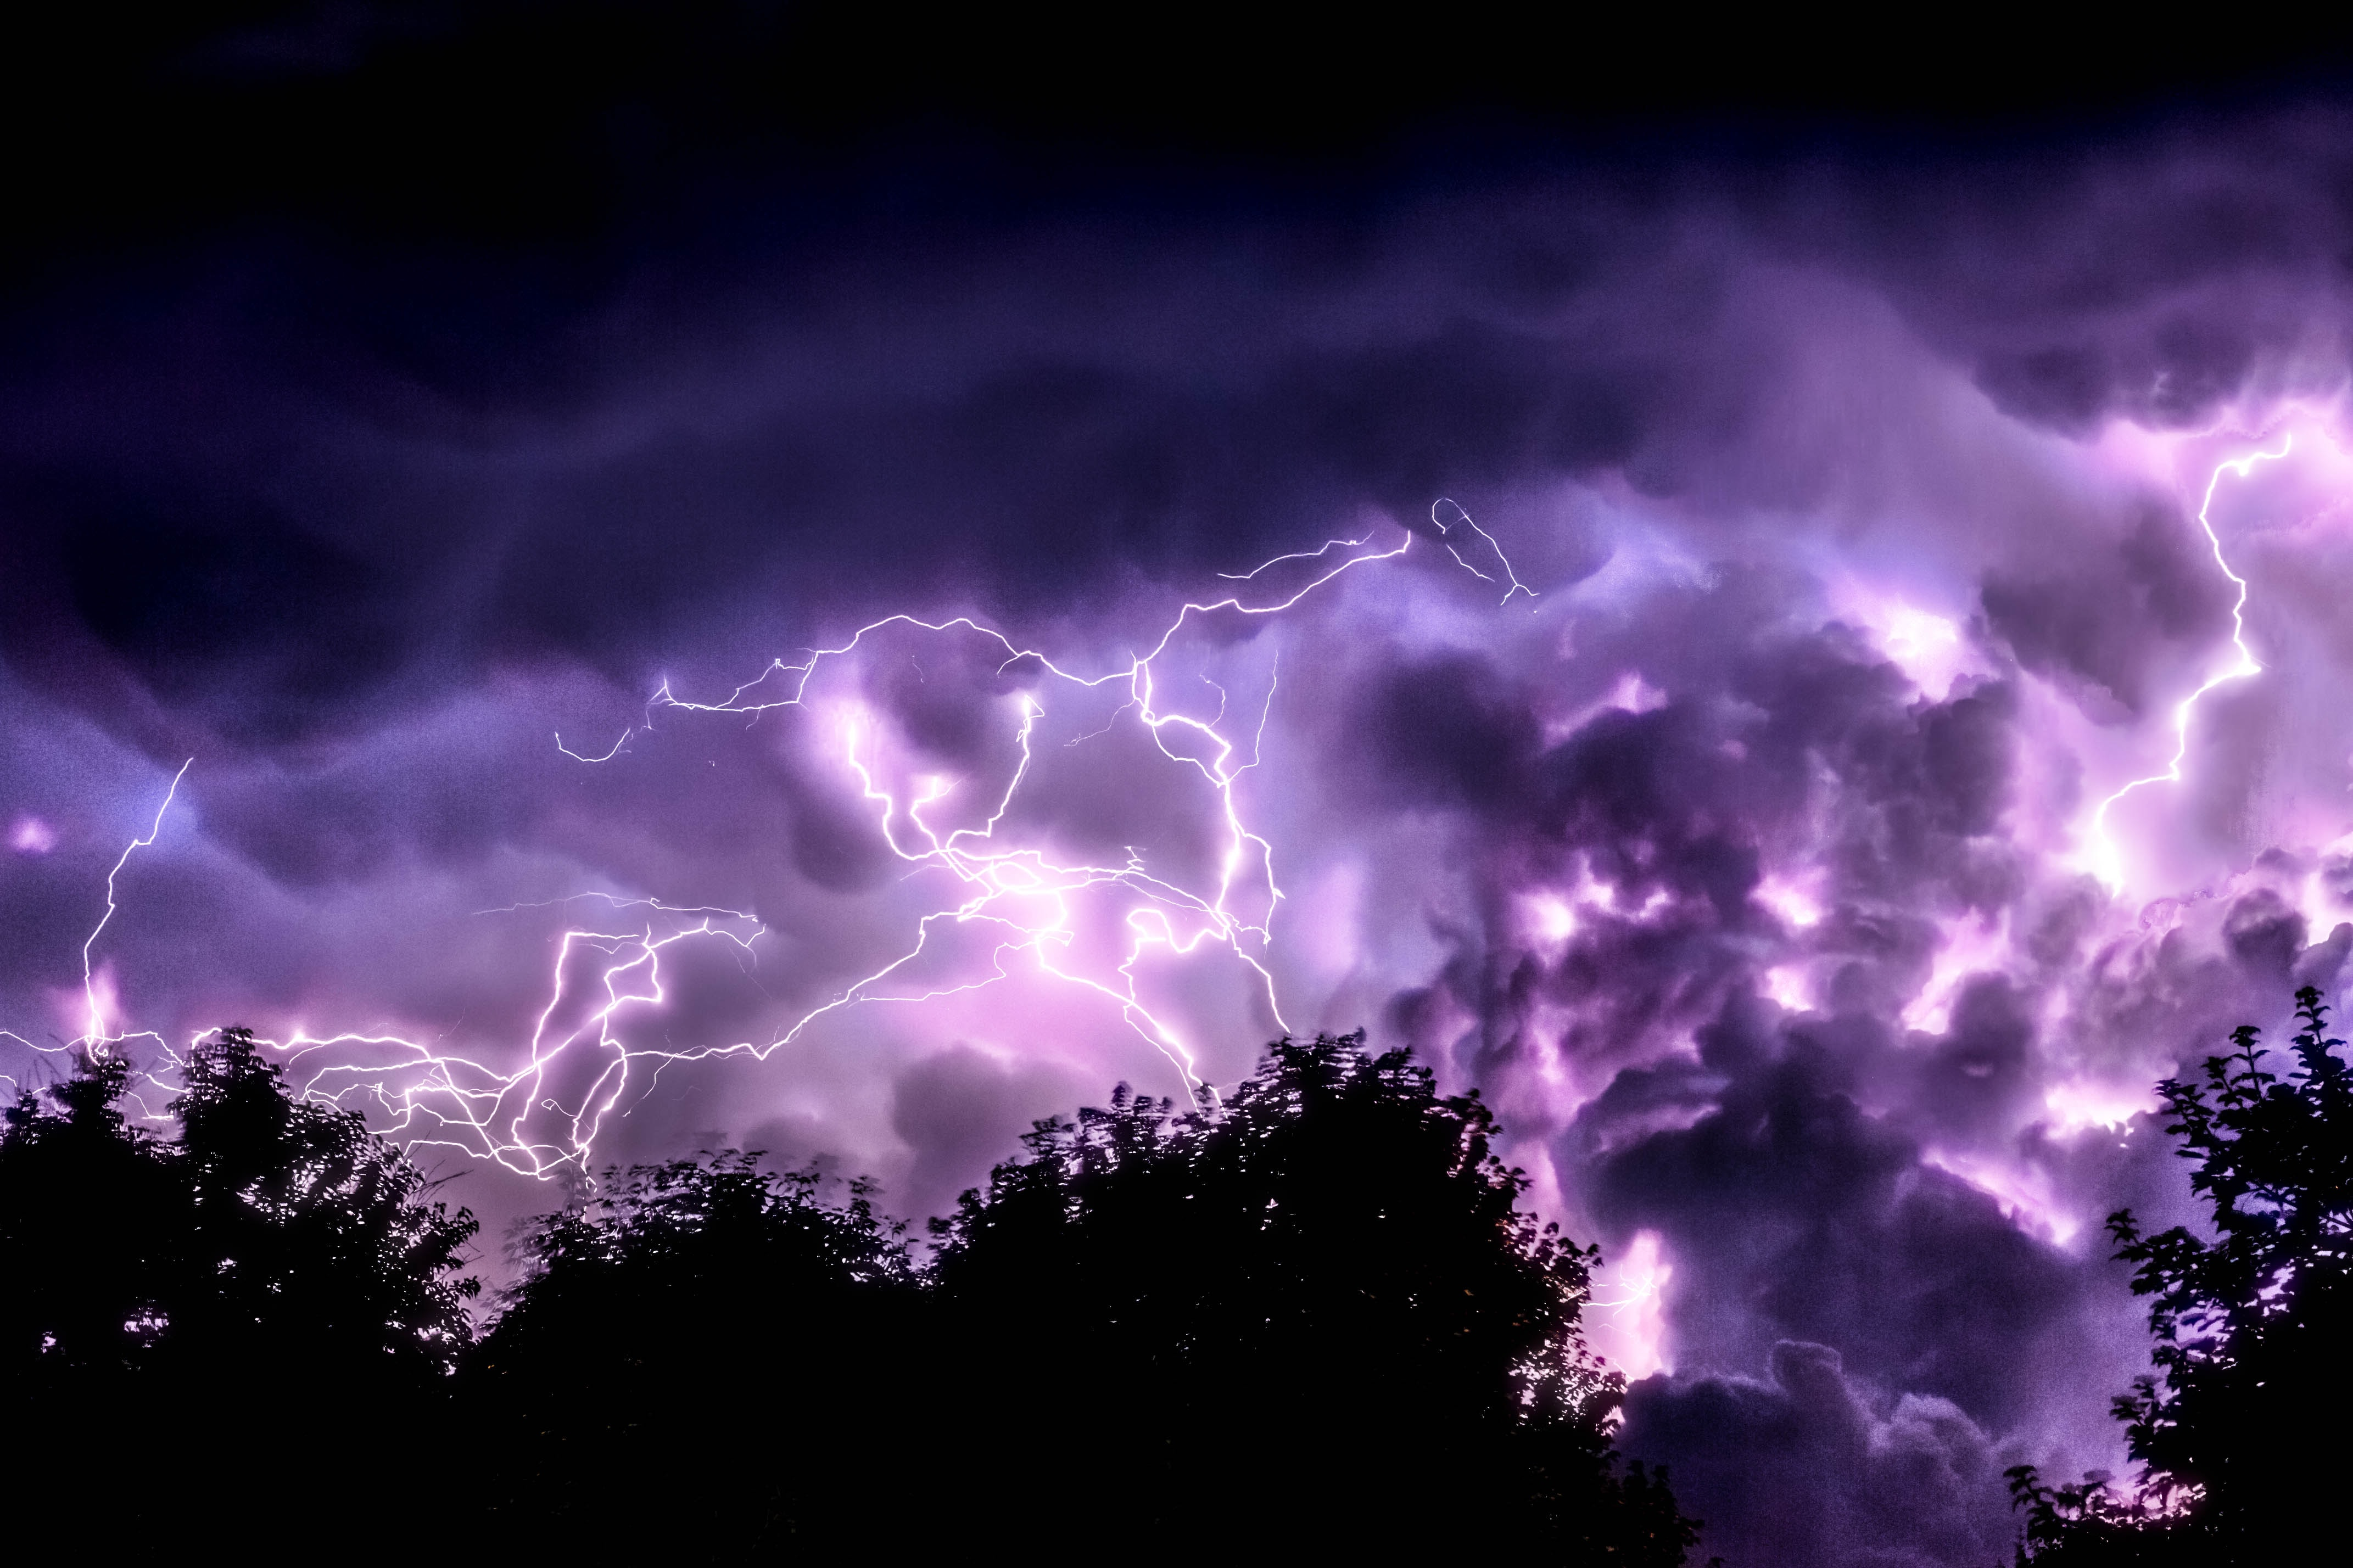 effects of meditation - storm before the lull